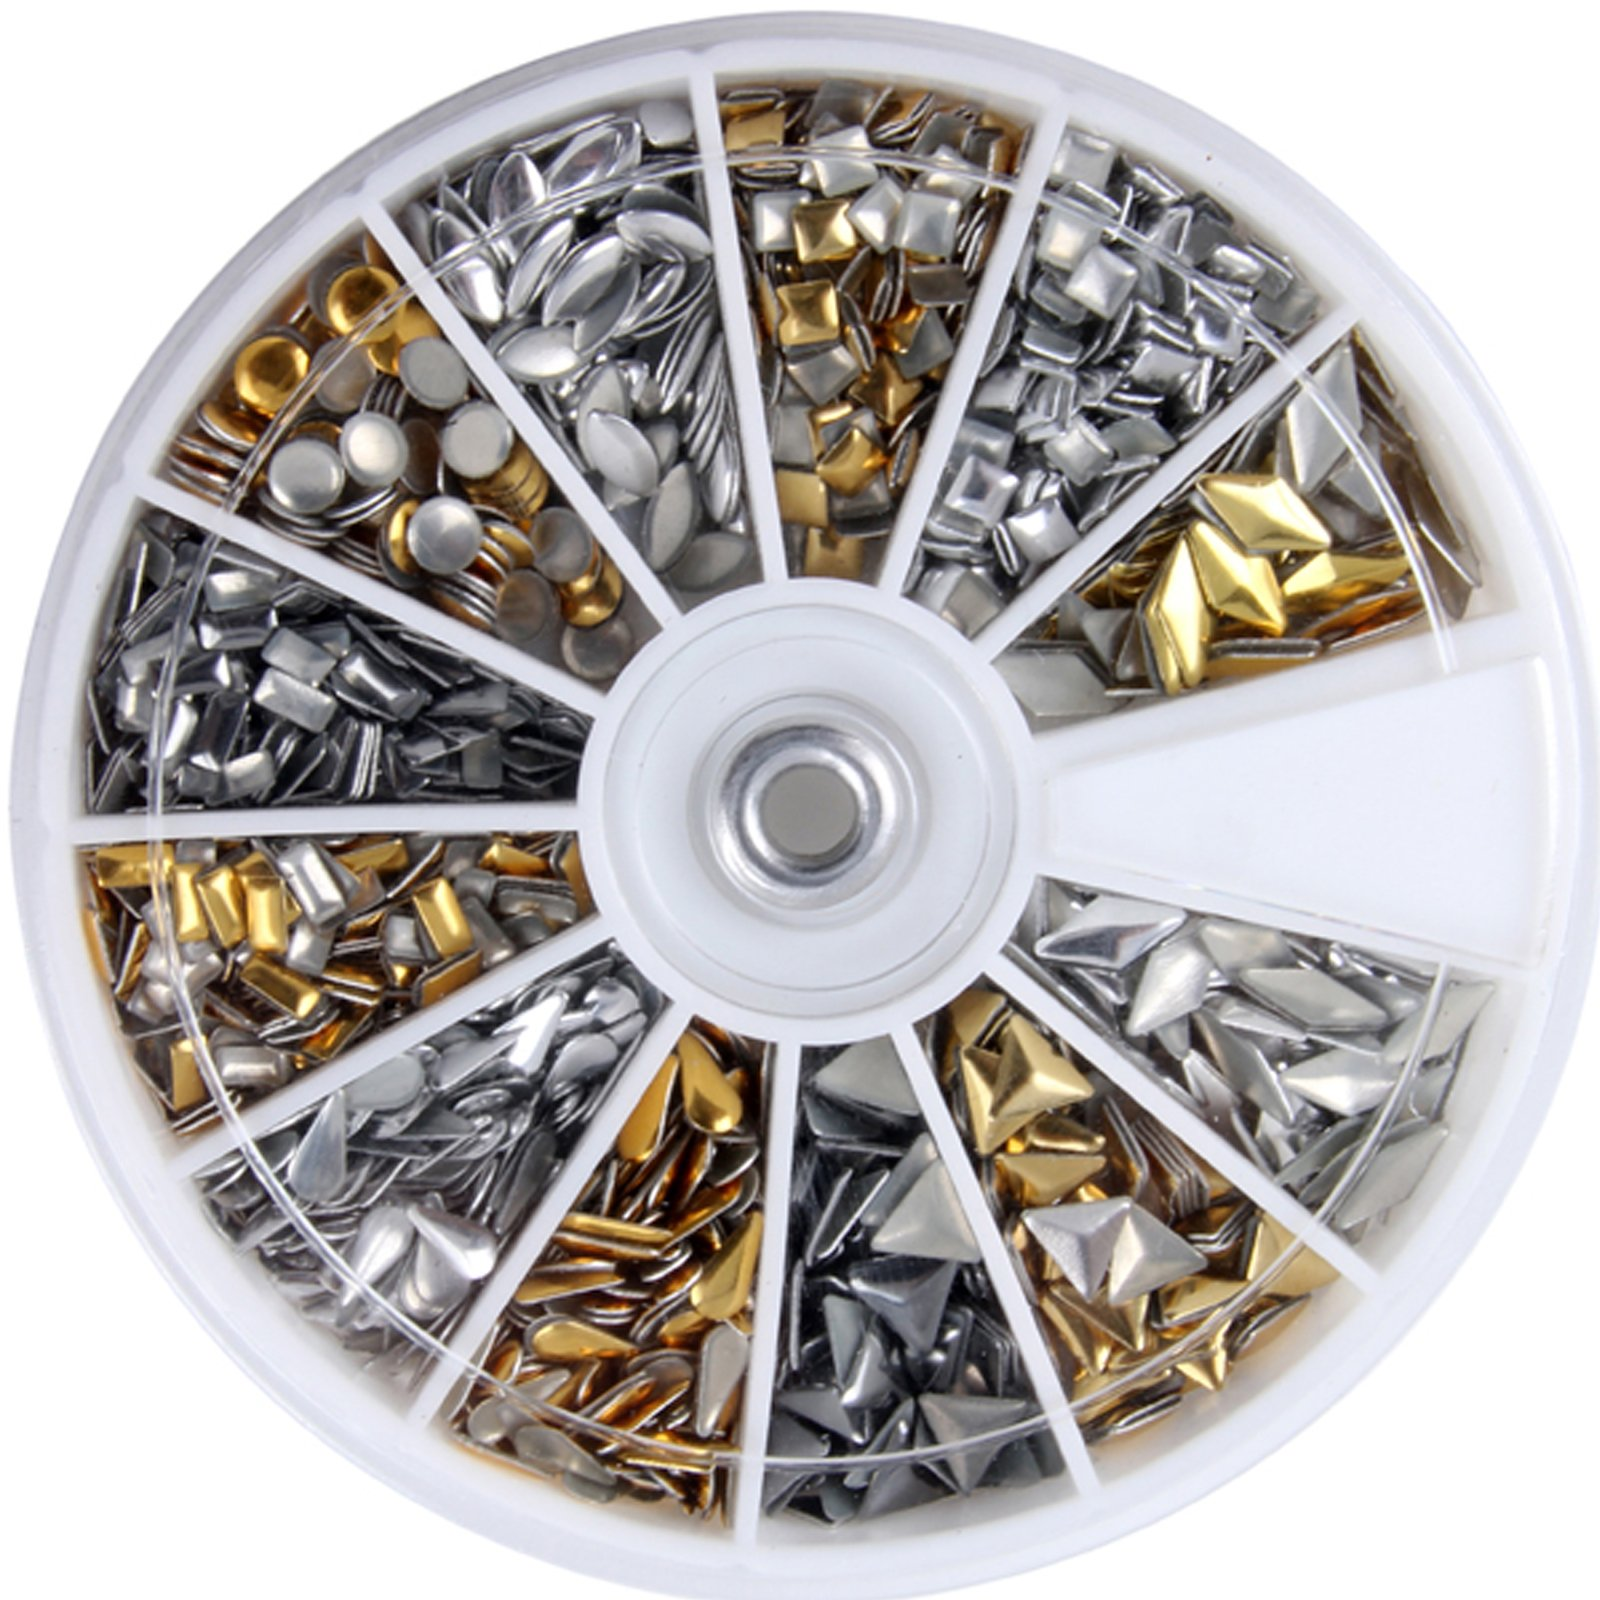 Amazon.com : Pack of 270 Nail Art Studs - 4mm - Gold and Silver ...